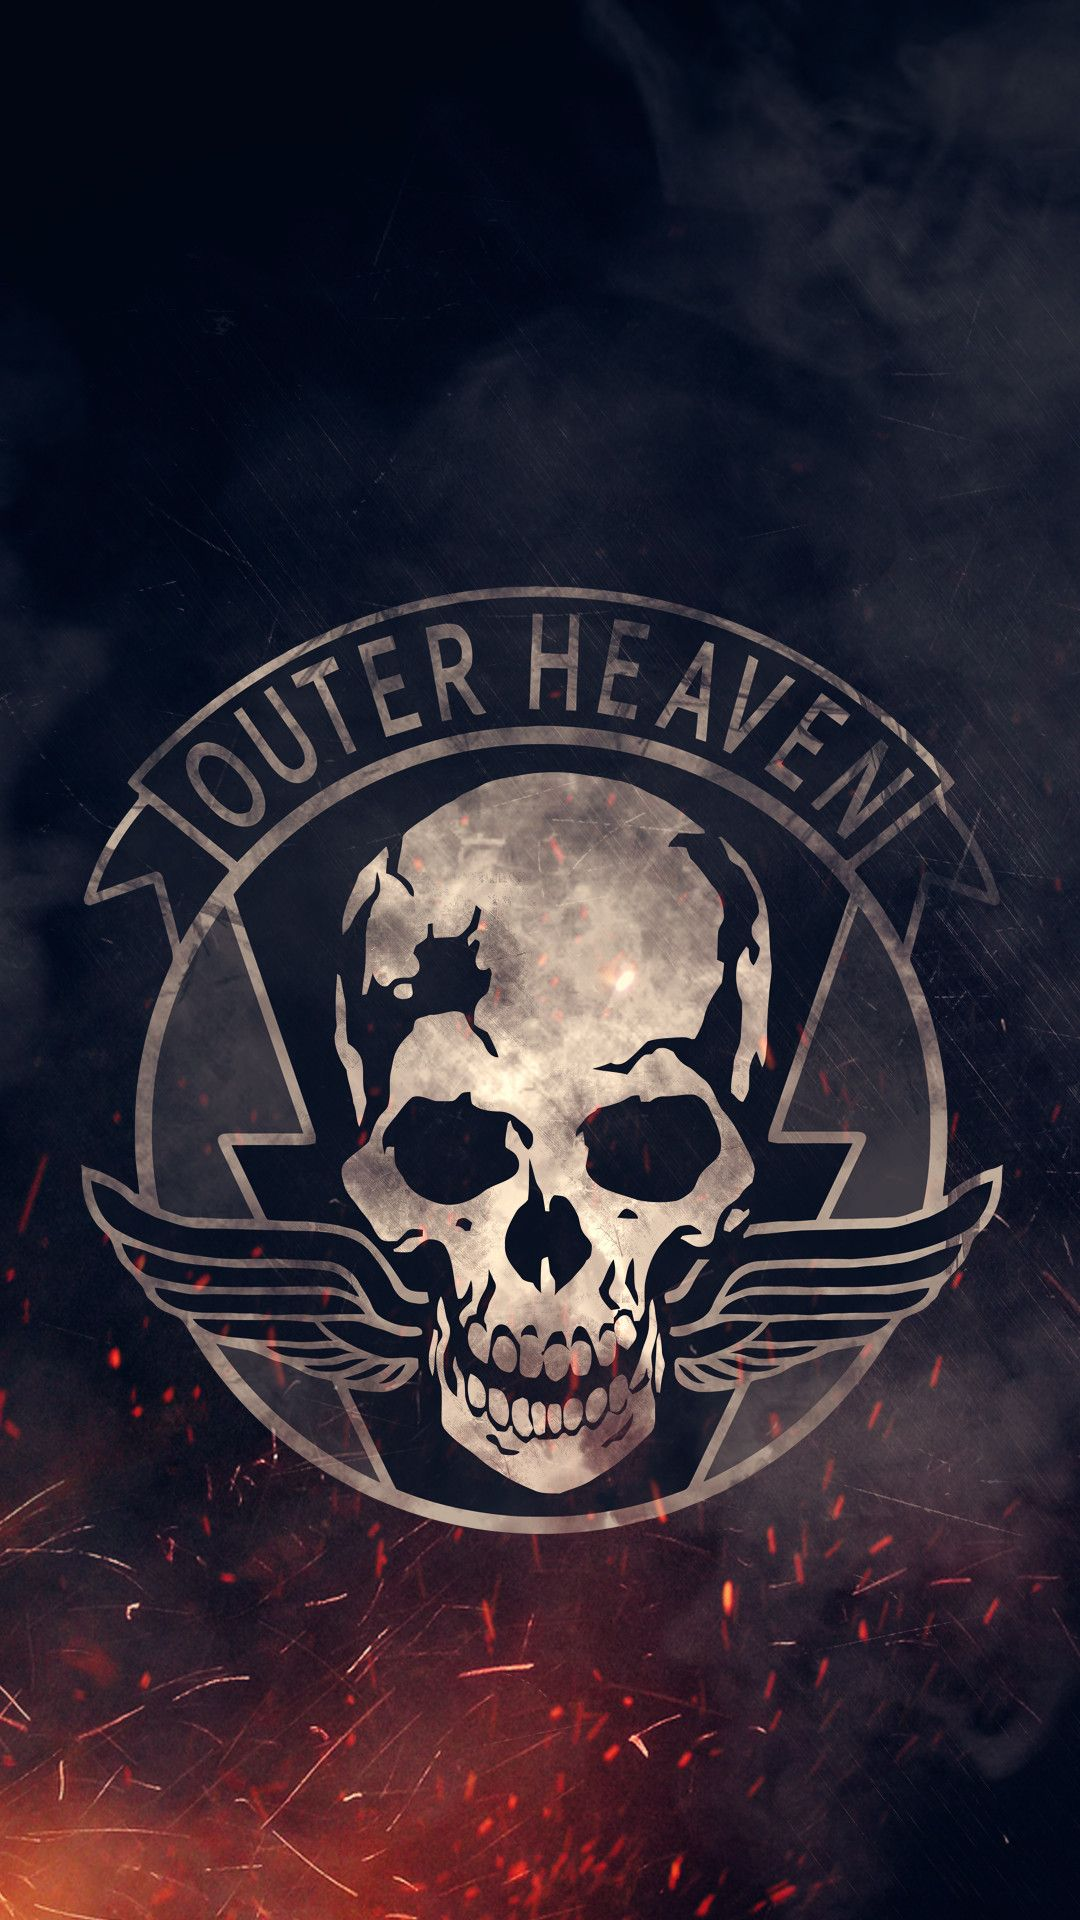 I Made An Outer Heaven Iphone6 Wallpaper Mgs Pinterest Metal Gear Solid V Definitive Edtn Region 2 Imgur